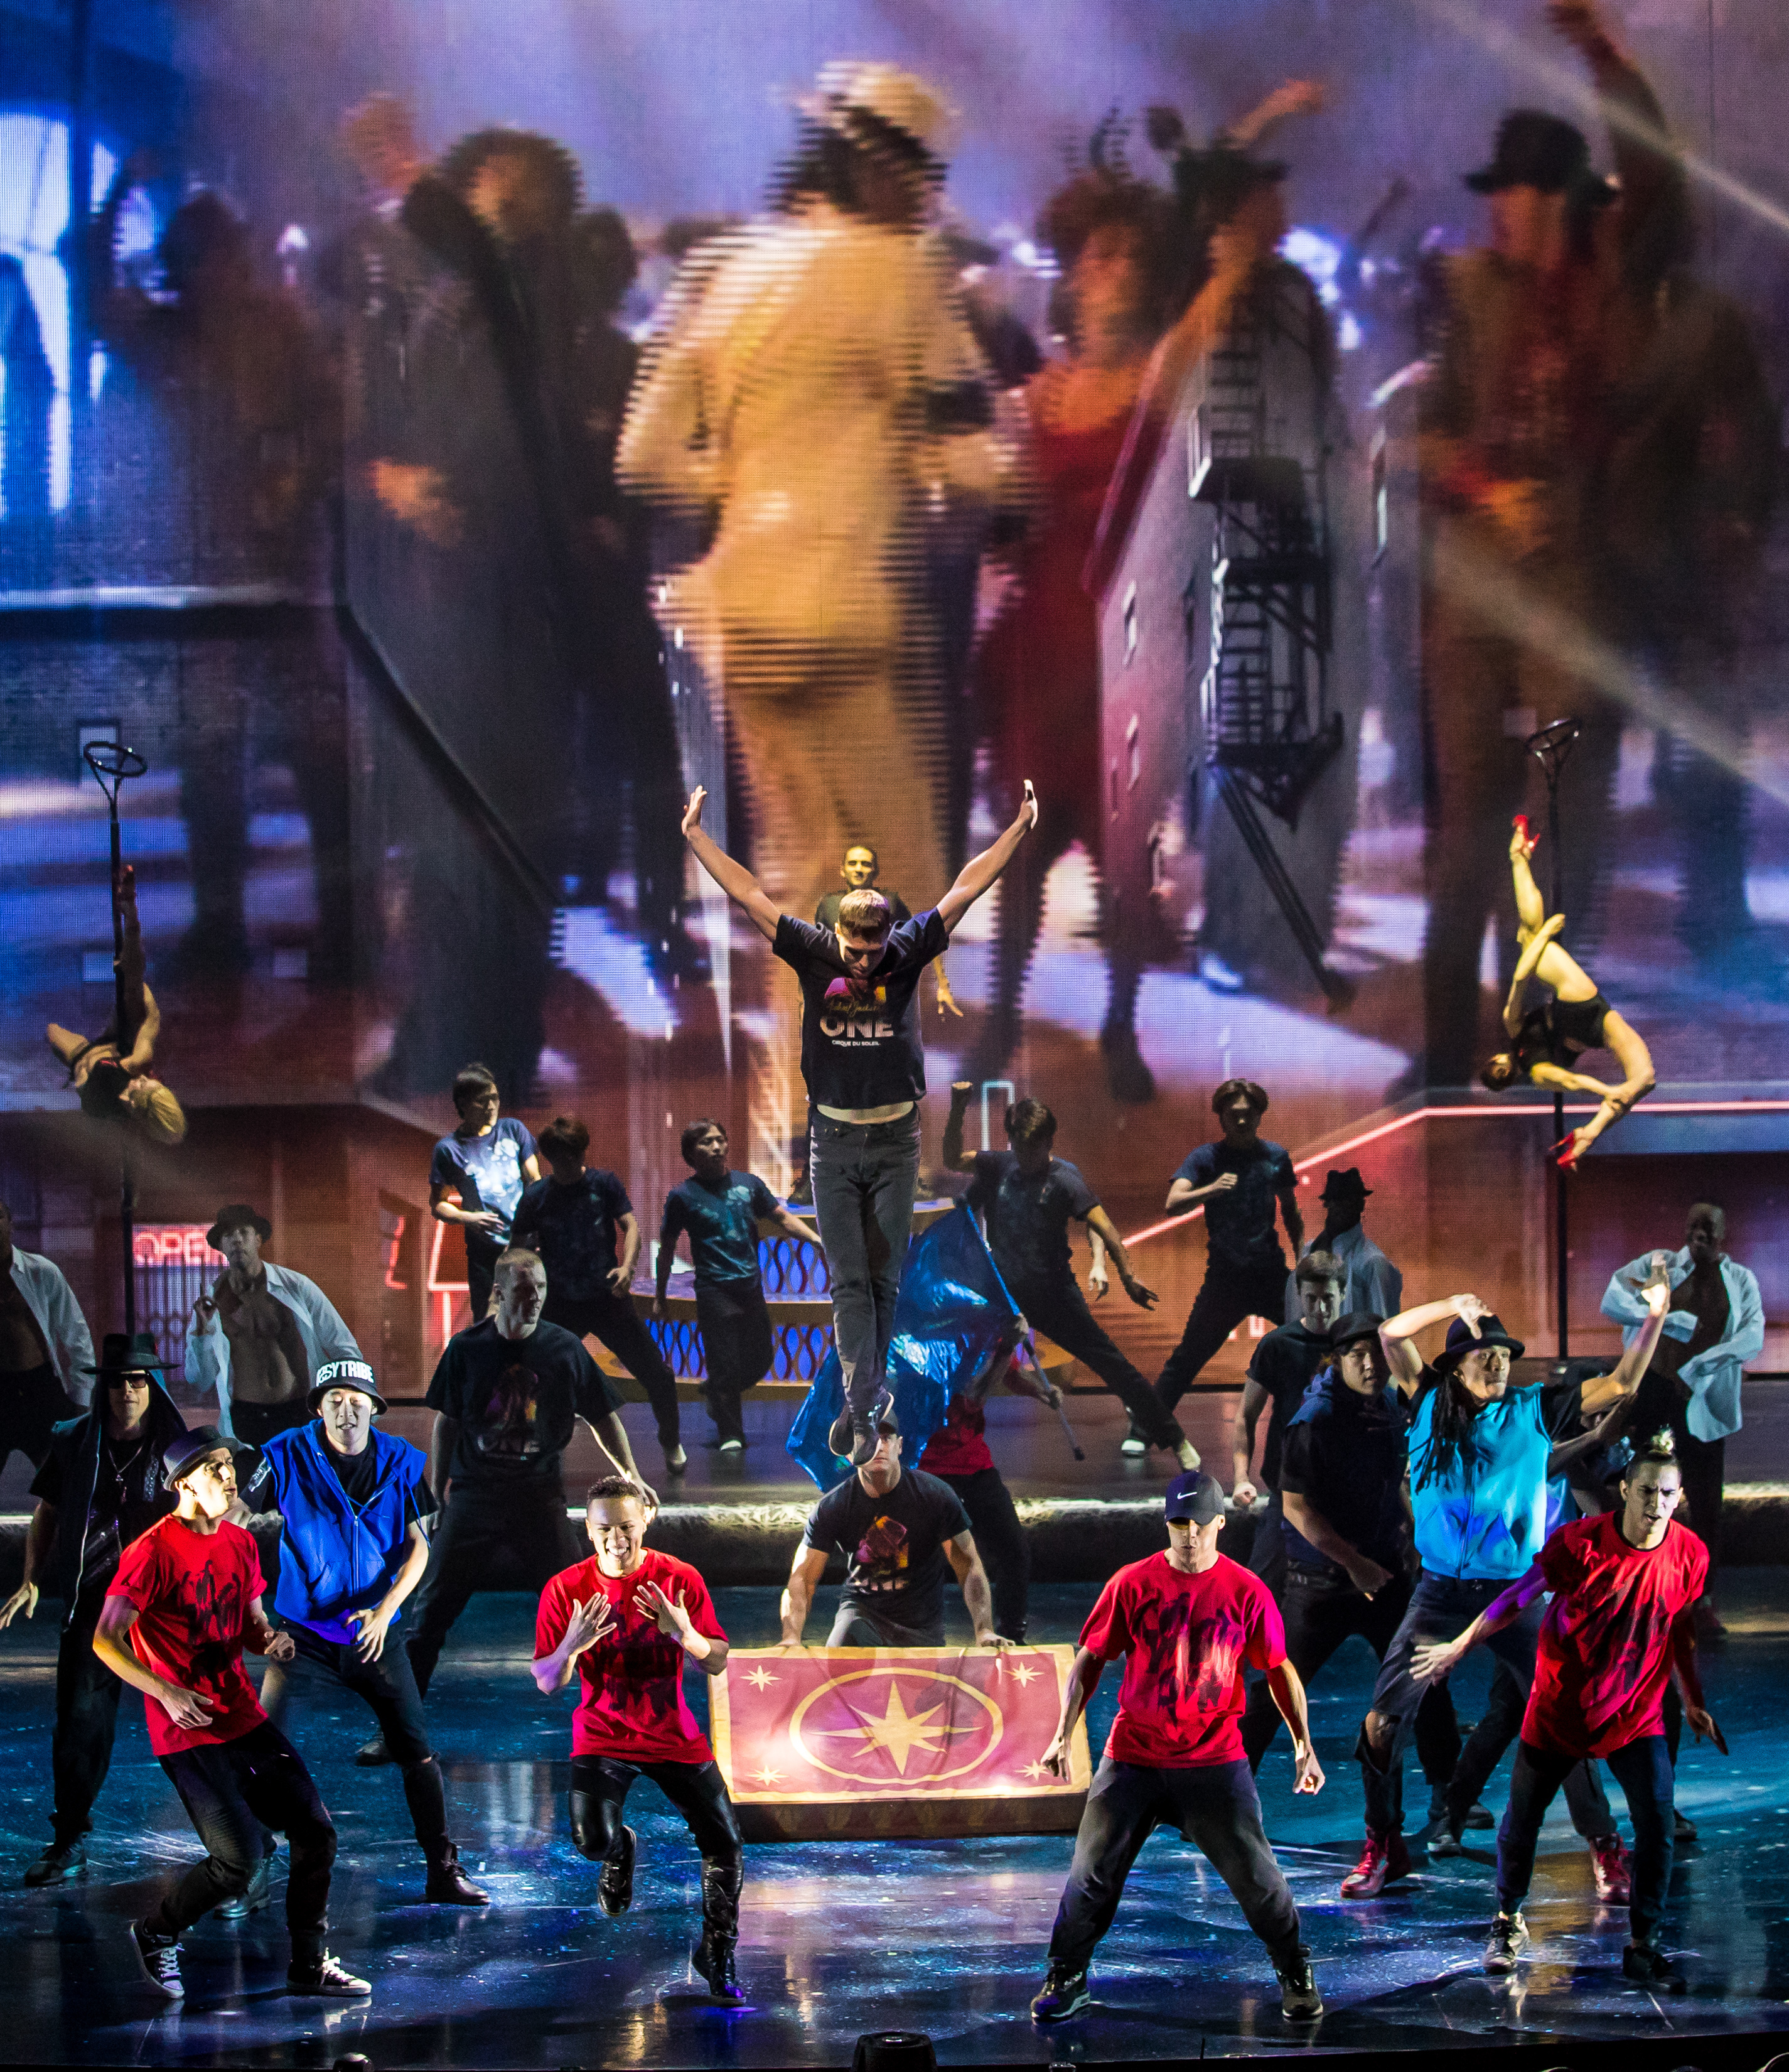 Michael Jackson's Estate and Cirque du Soleil Celebrated the King of Pop's Birthday in Vegas With Style news